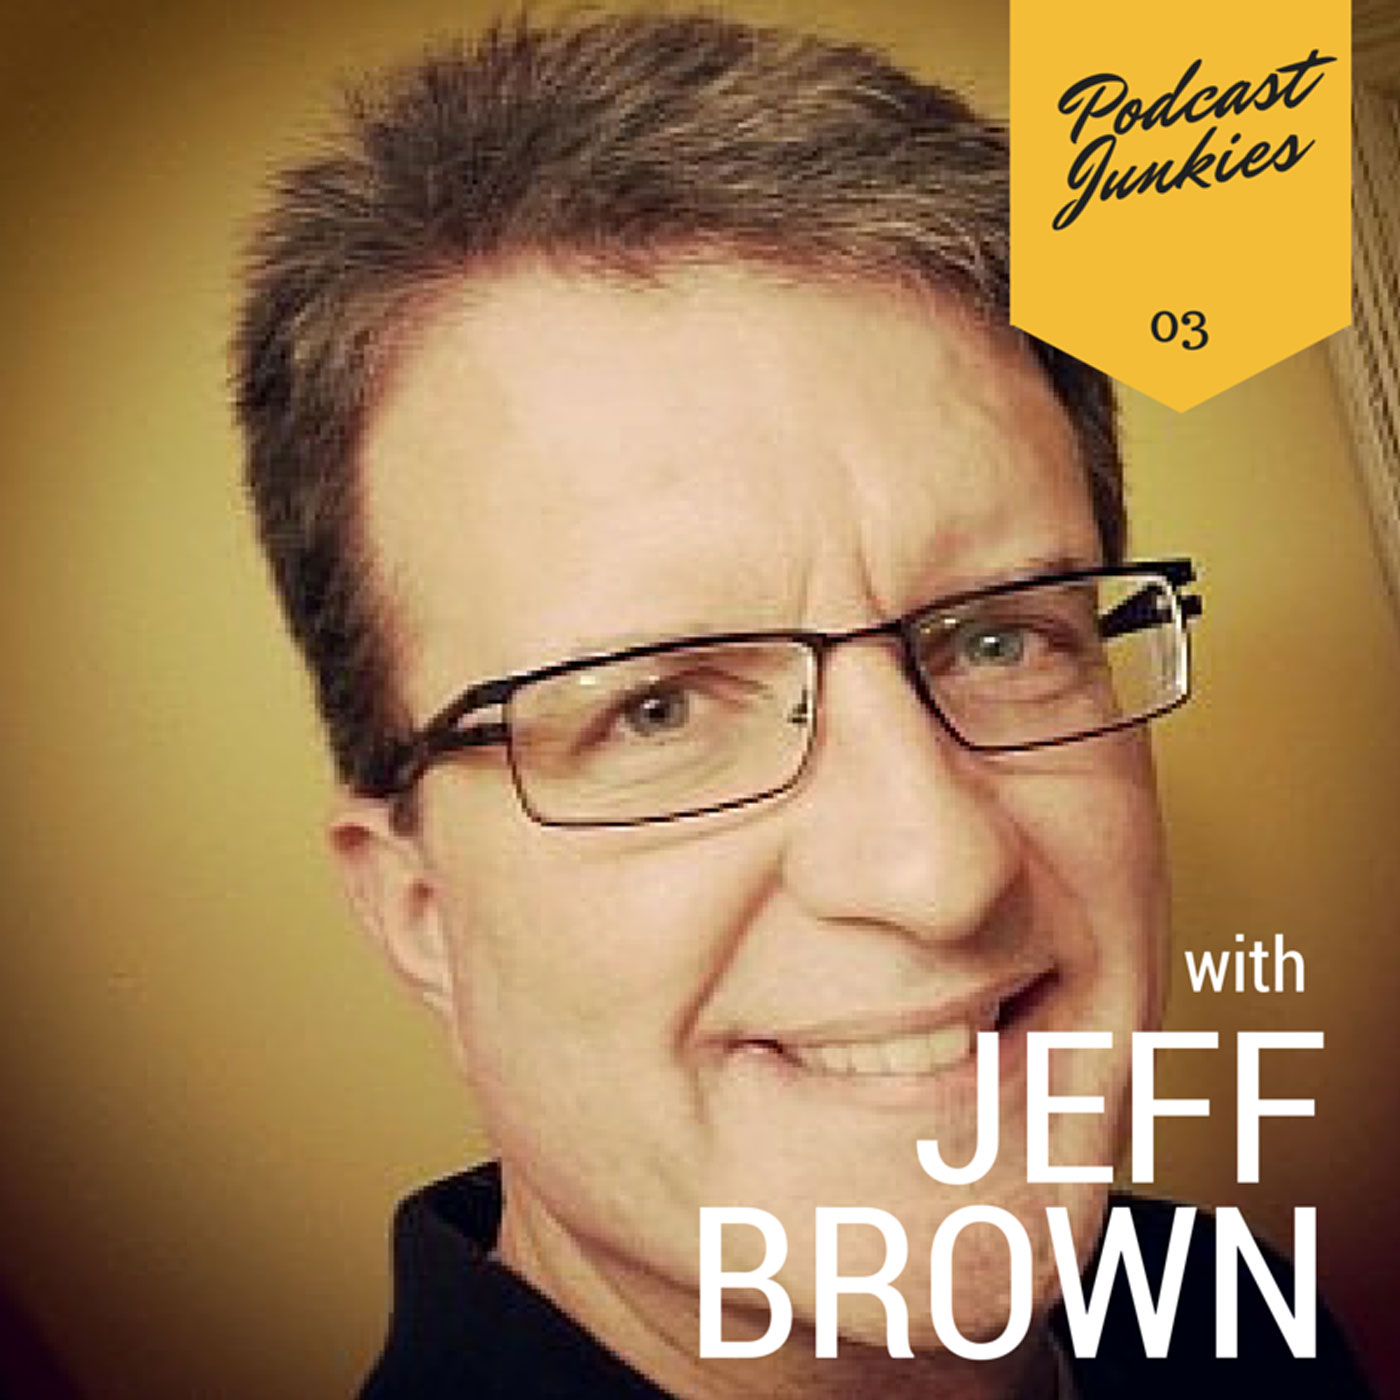 11 Apr 2014 003 Jeff Brown | With 26 Years As A Broadcaster, He Was Born to Podcast